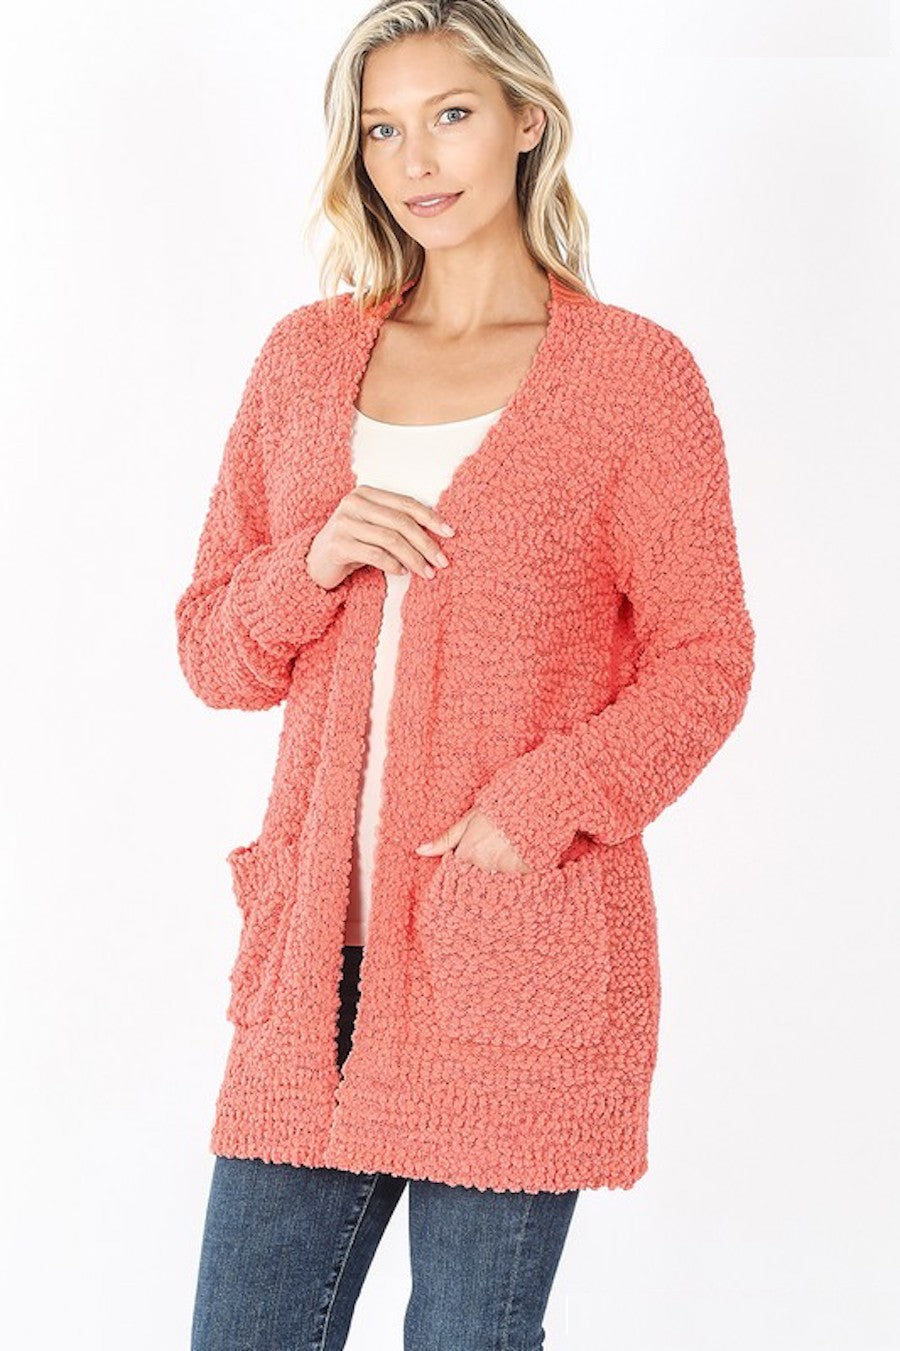 Popcorn Pocket Cardigan in Coral